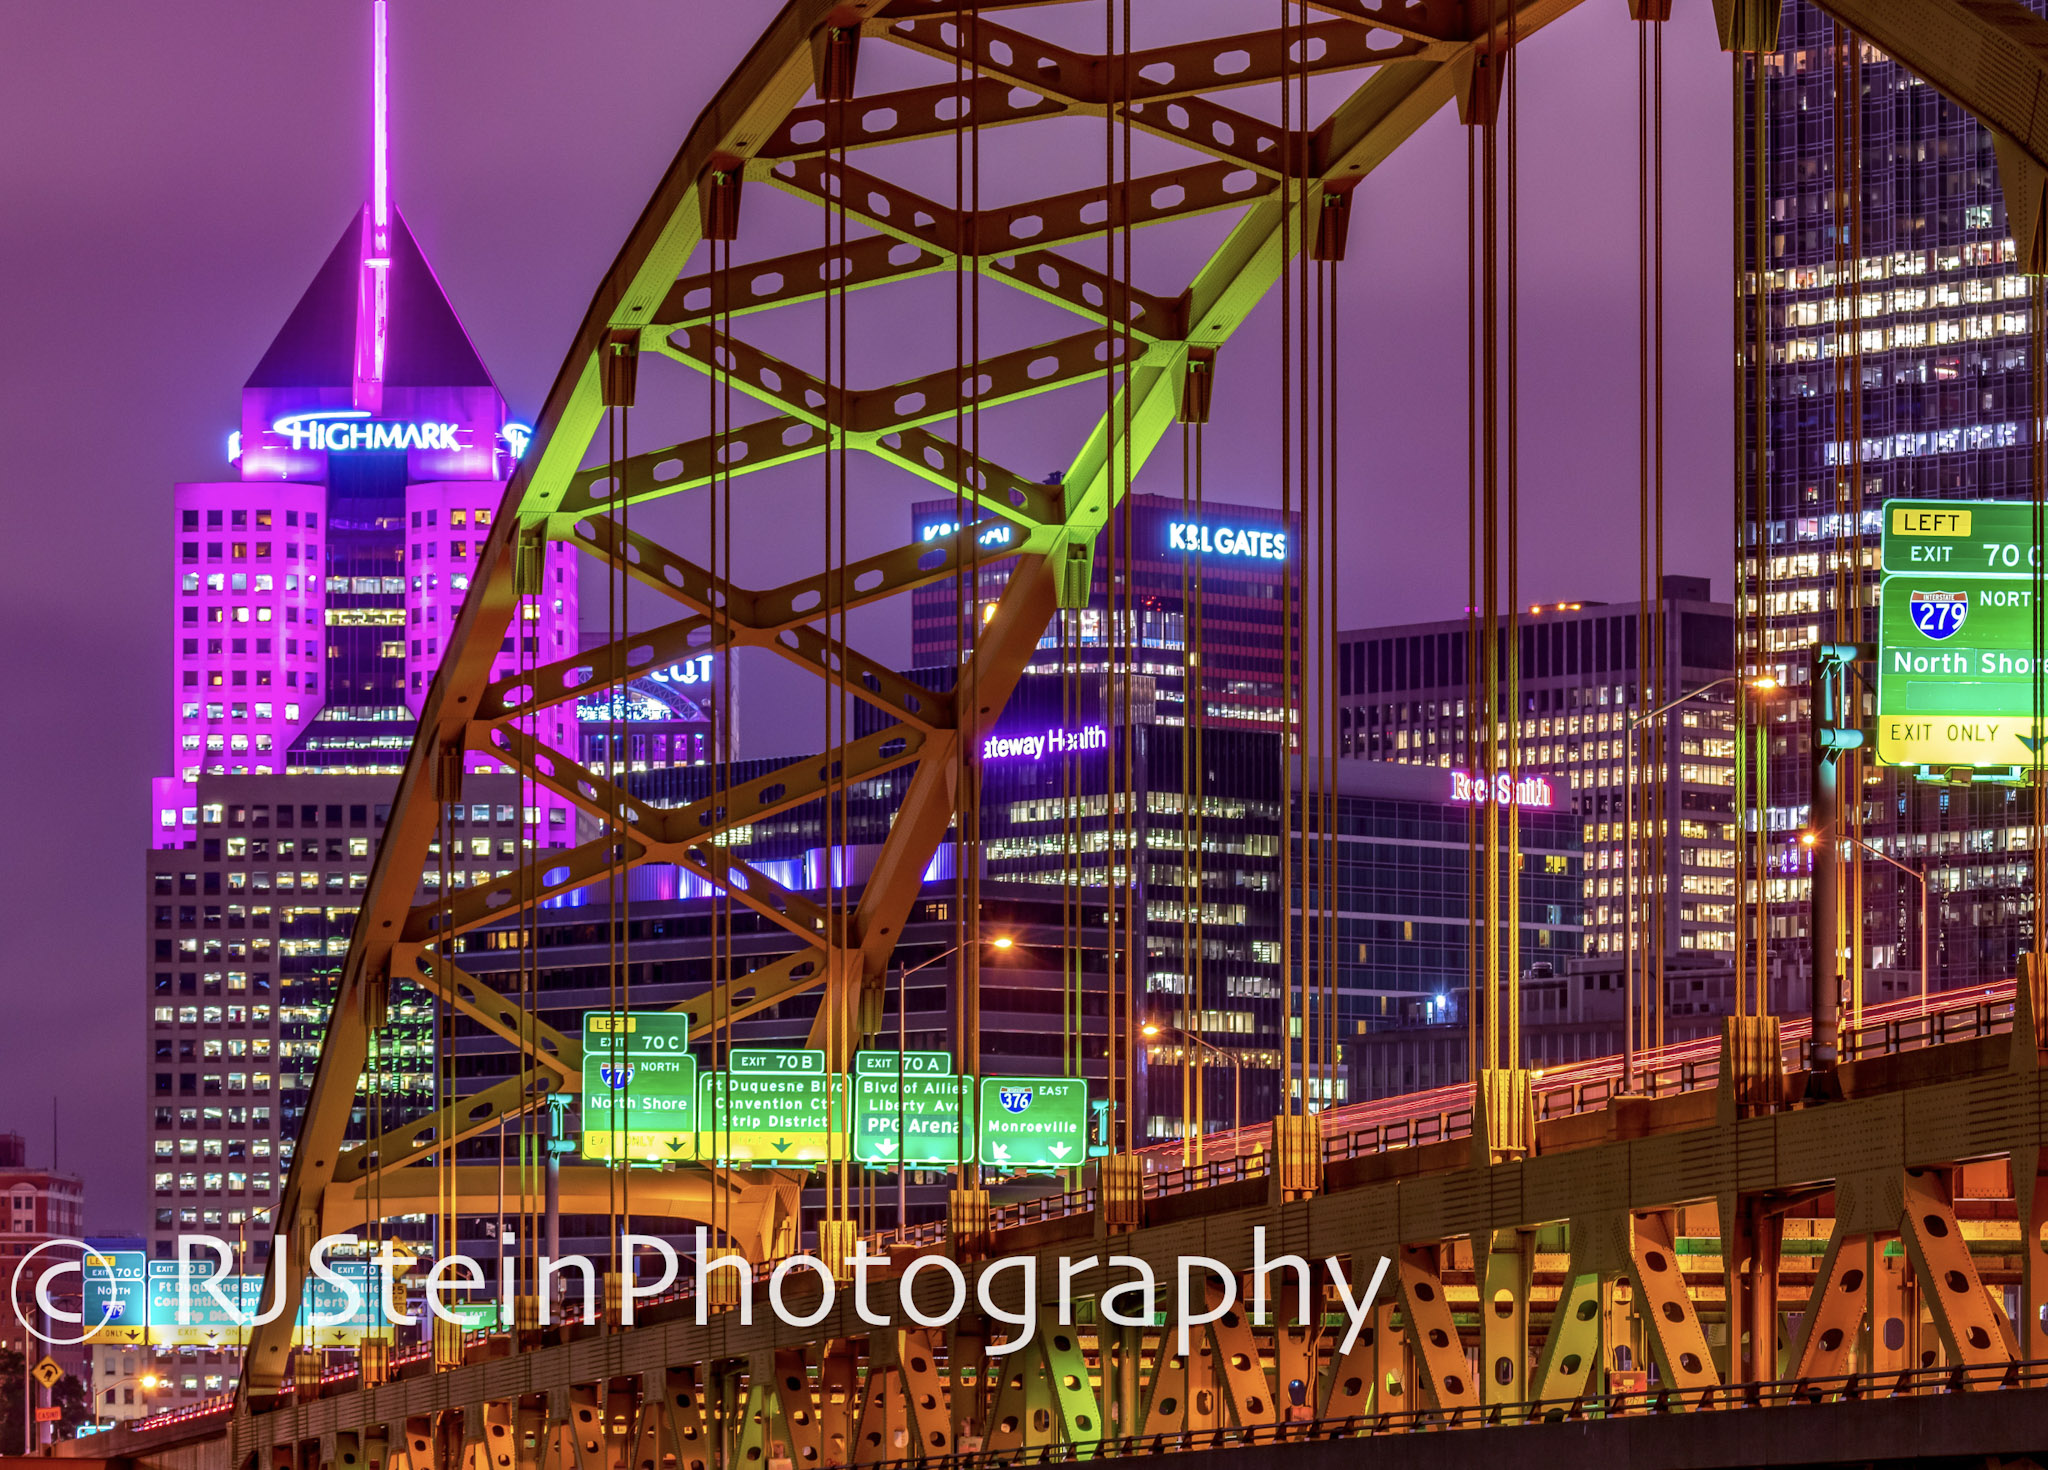 breast cancer awareness in pittsburgh, pittsburgh, 2018